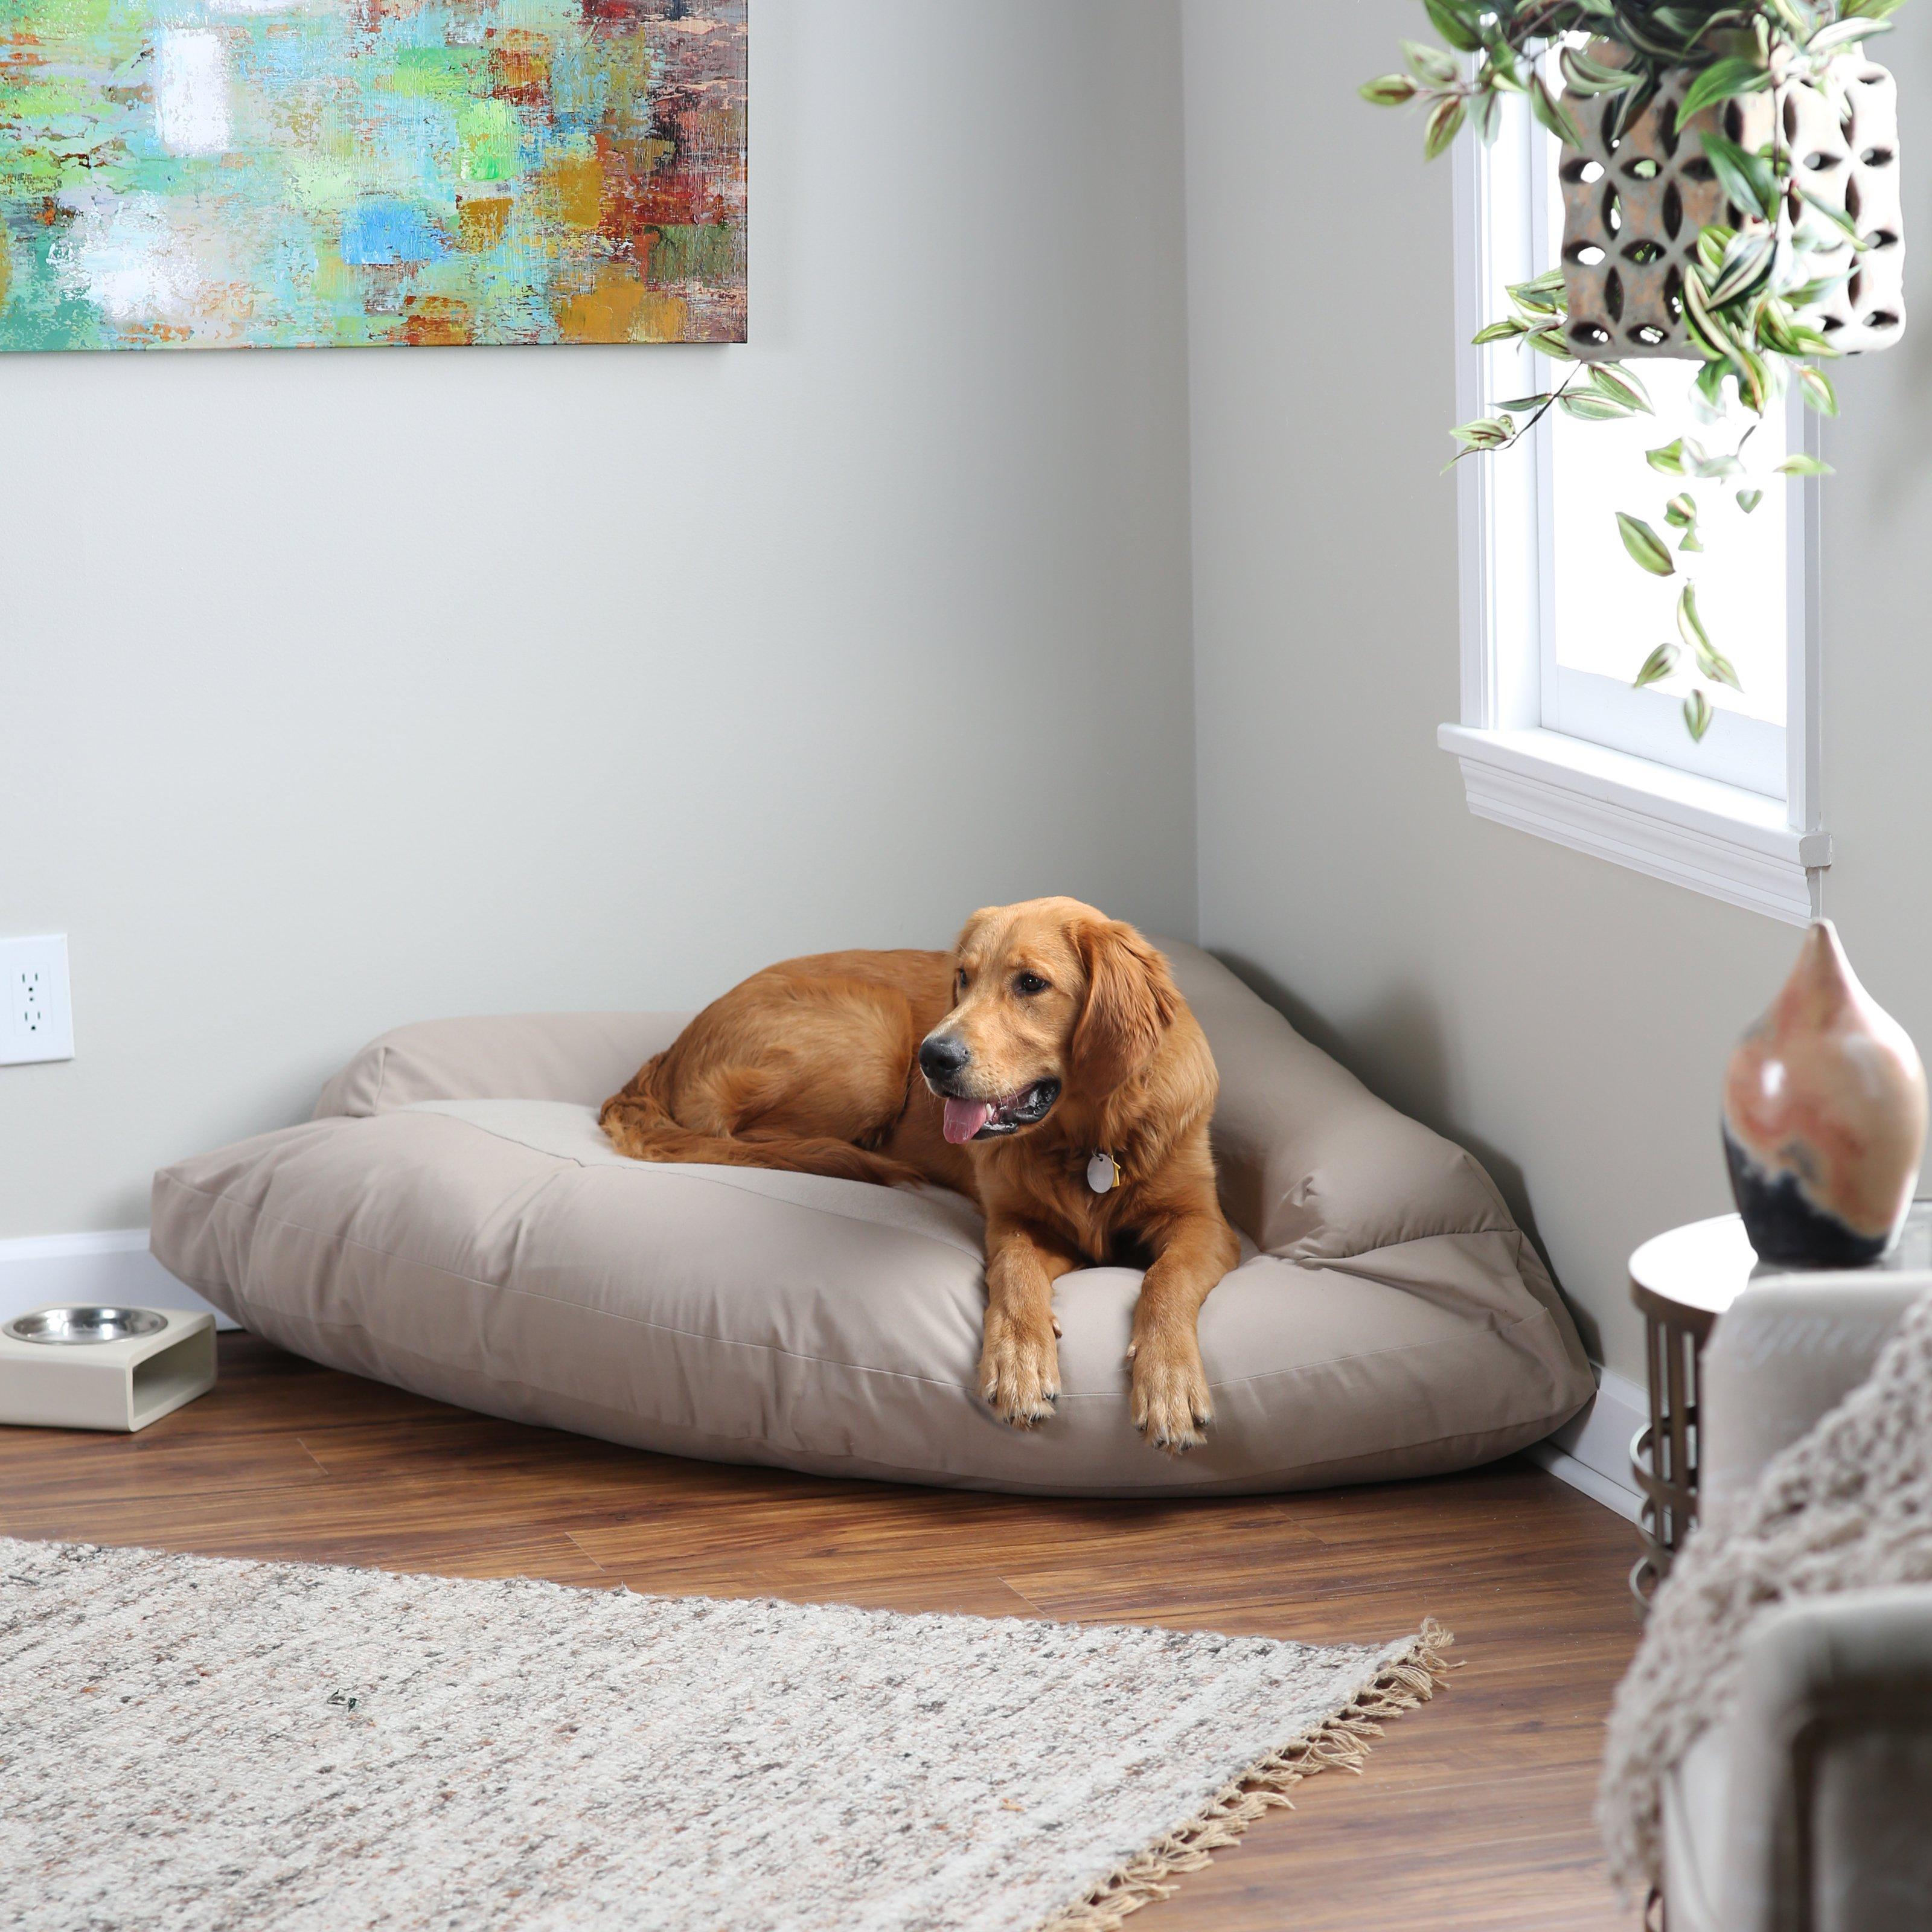 Dog Bed for Crate | Most Durable Dog Toys | Chew Proof Dog Bed